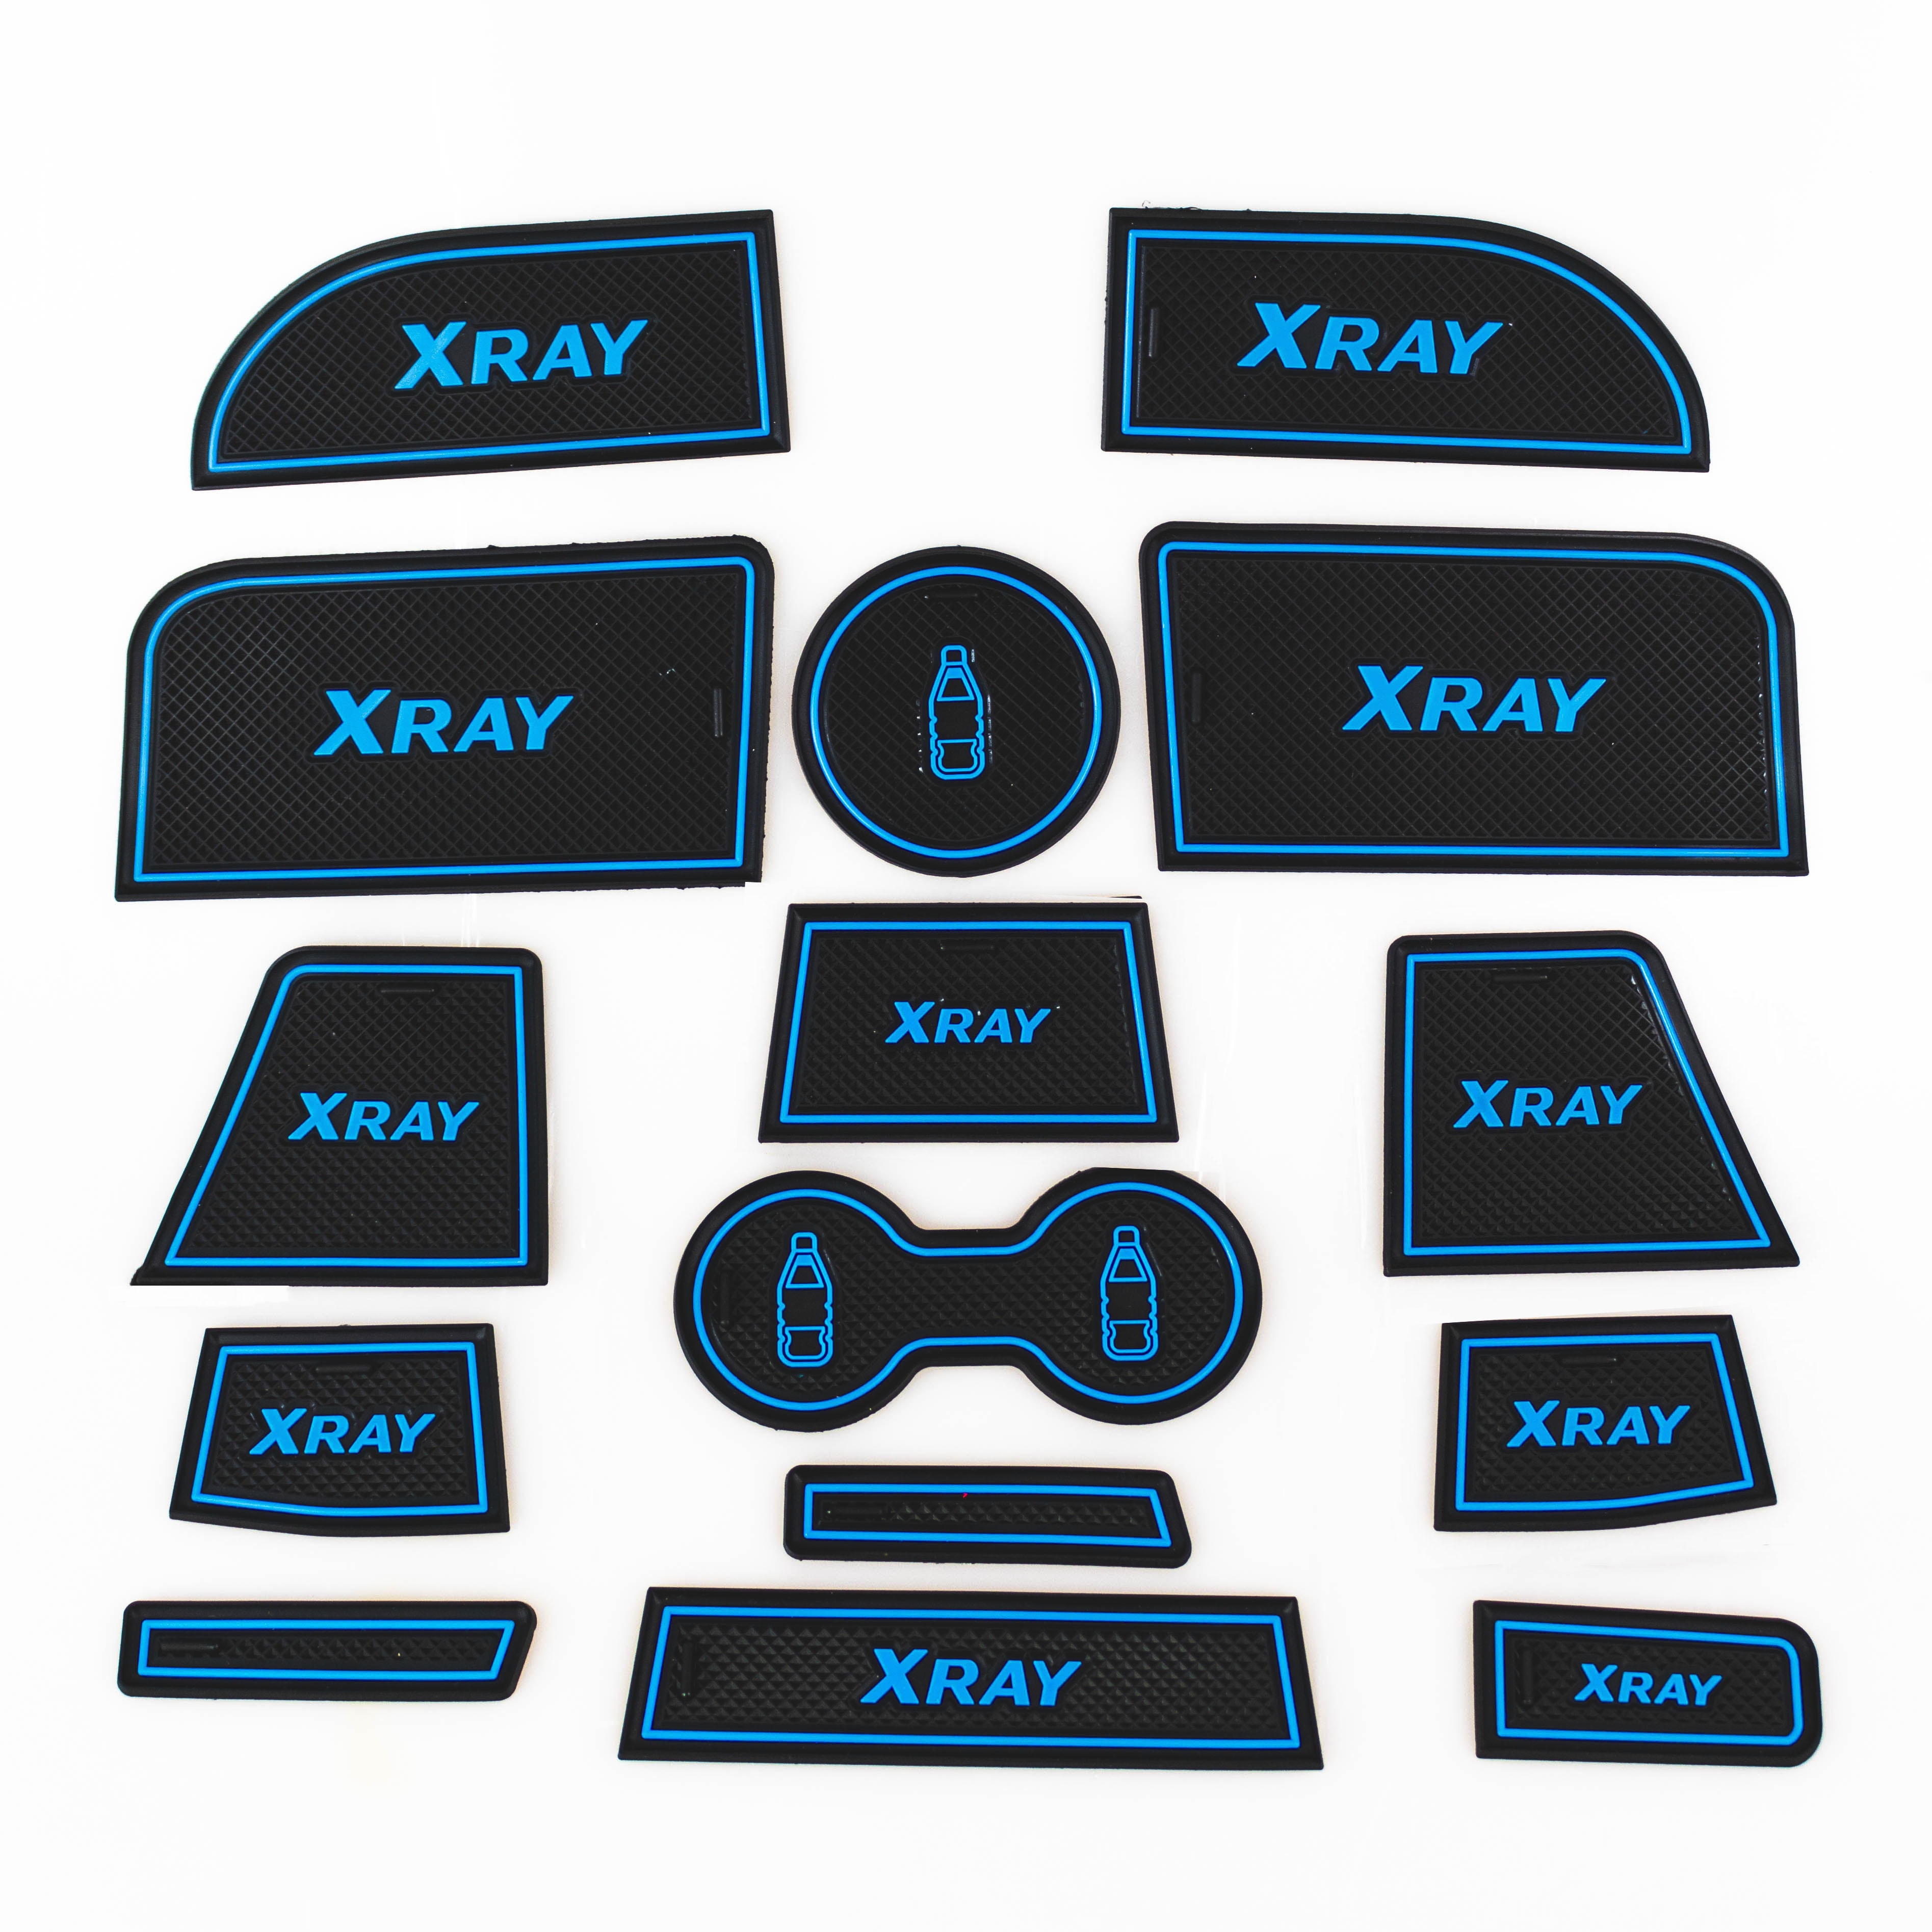 NEW XRAY Gate Slot Pad Door Groove Mat Interior Non-slip Mats Dust-proof Mat for LADA XRAY 2016-2018NEW XRAY Gate Slot Pad Door Groove Mat Interior Non-slip Mats Dust-proof Mat for LADA XRAY 2016-2018